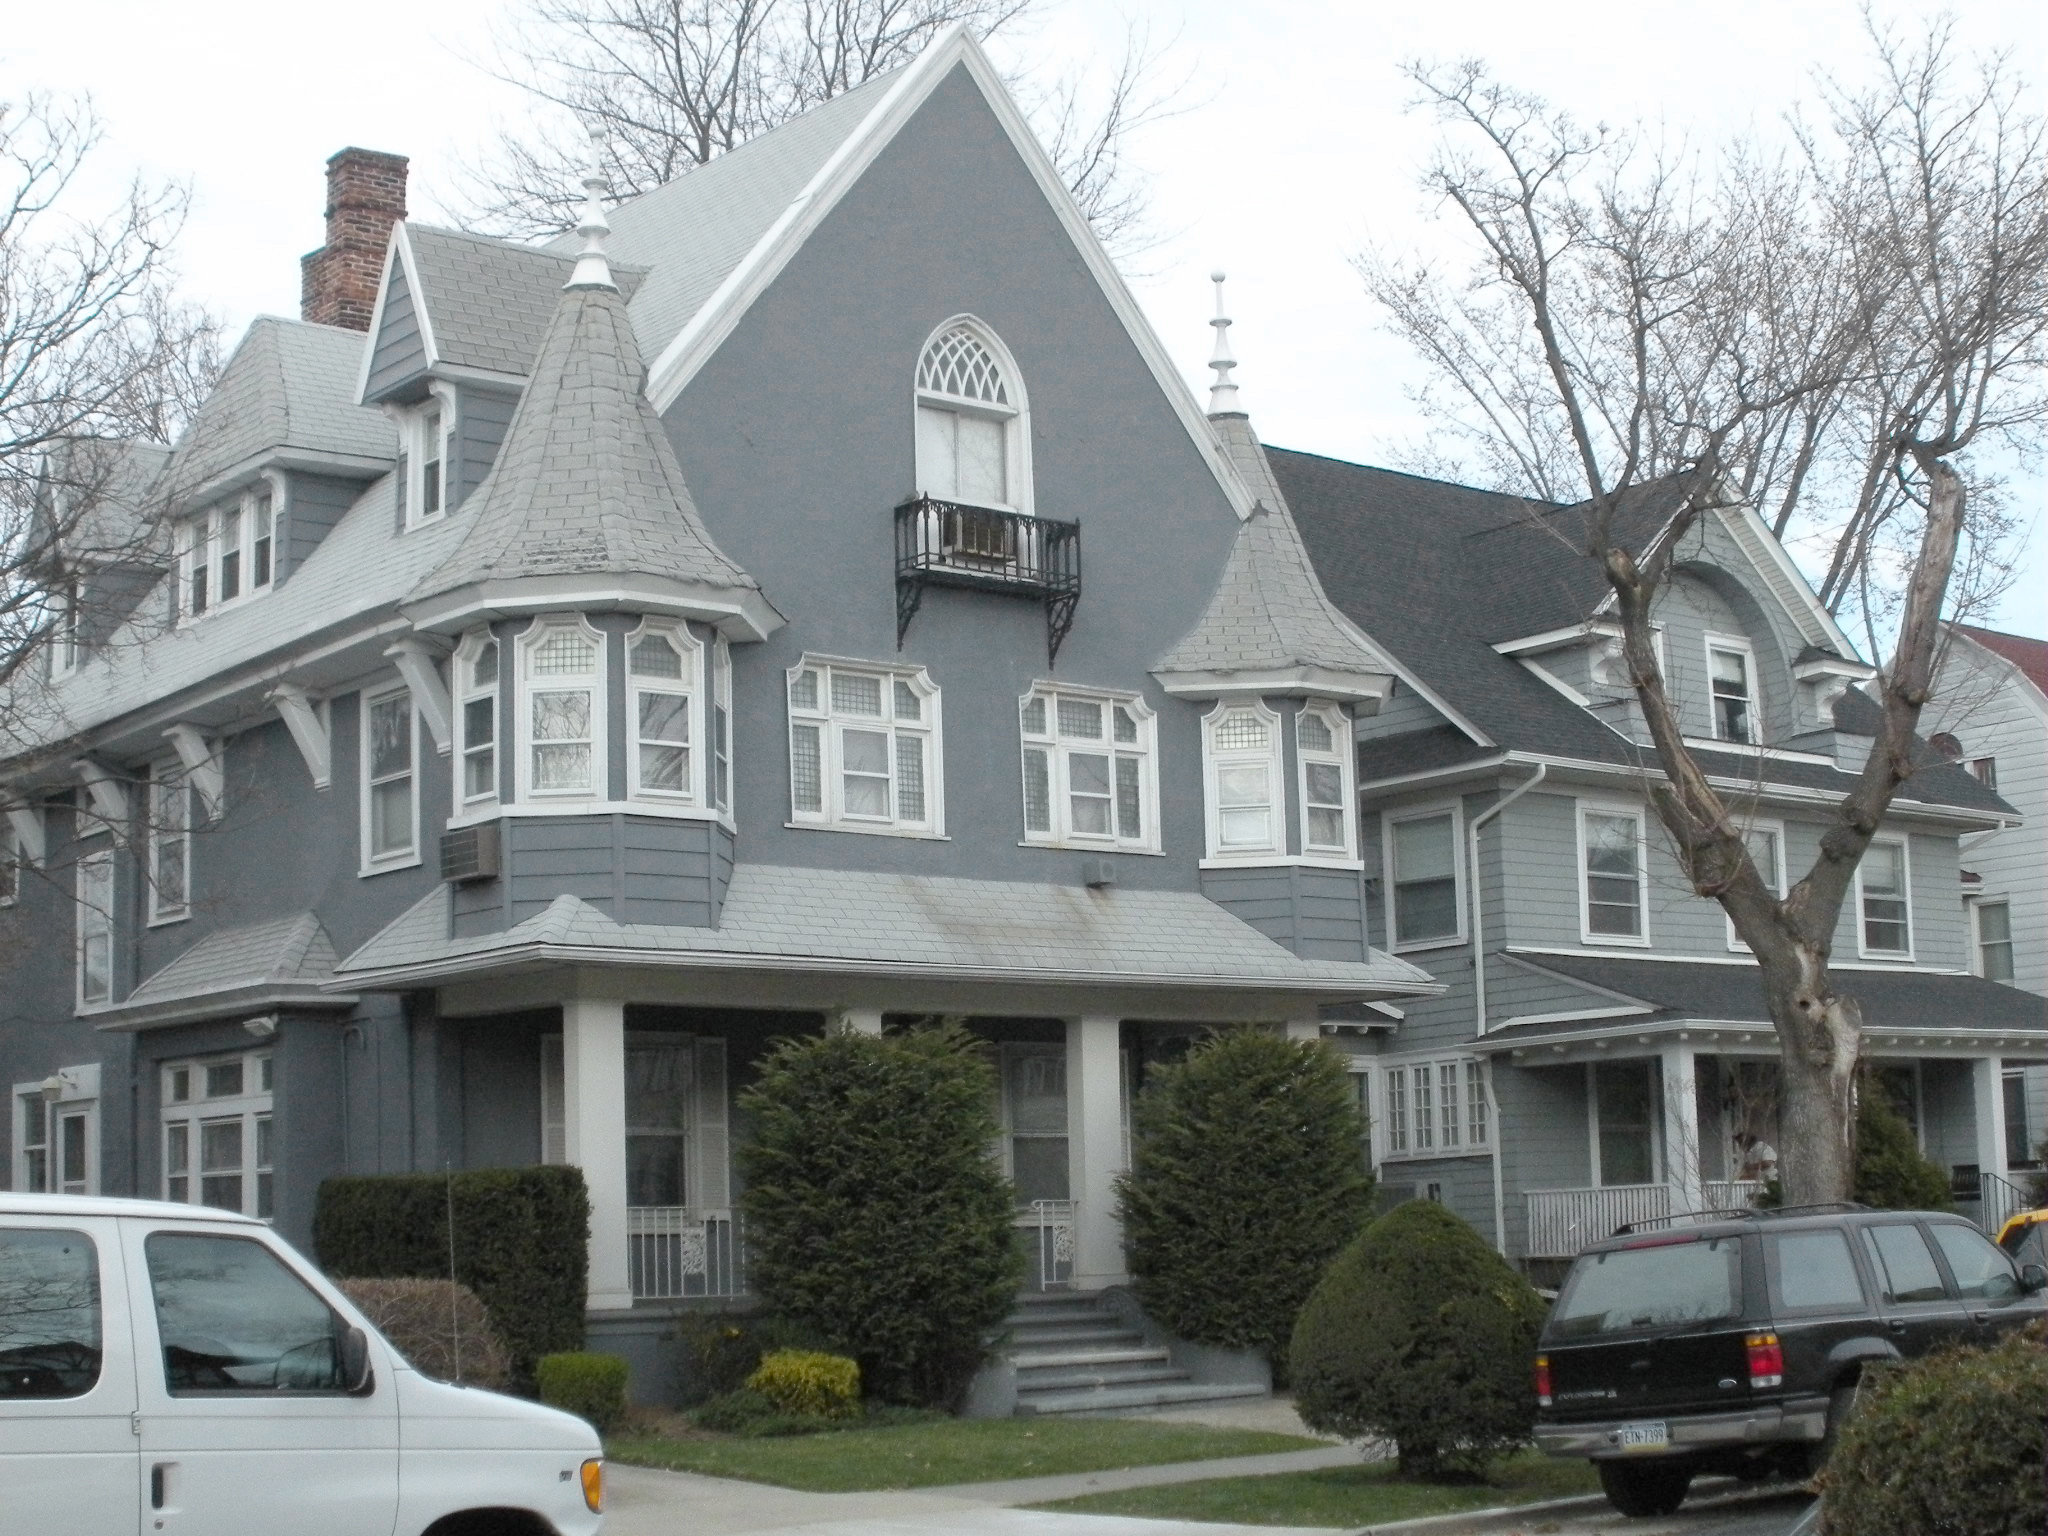 victorian era style houses in Ditmas Park, Brooklyn, New York